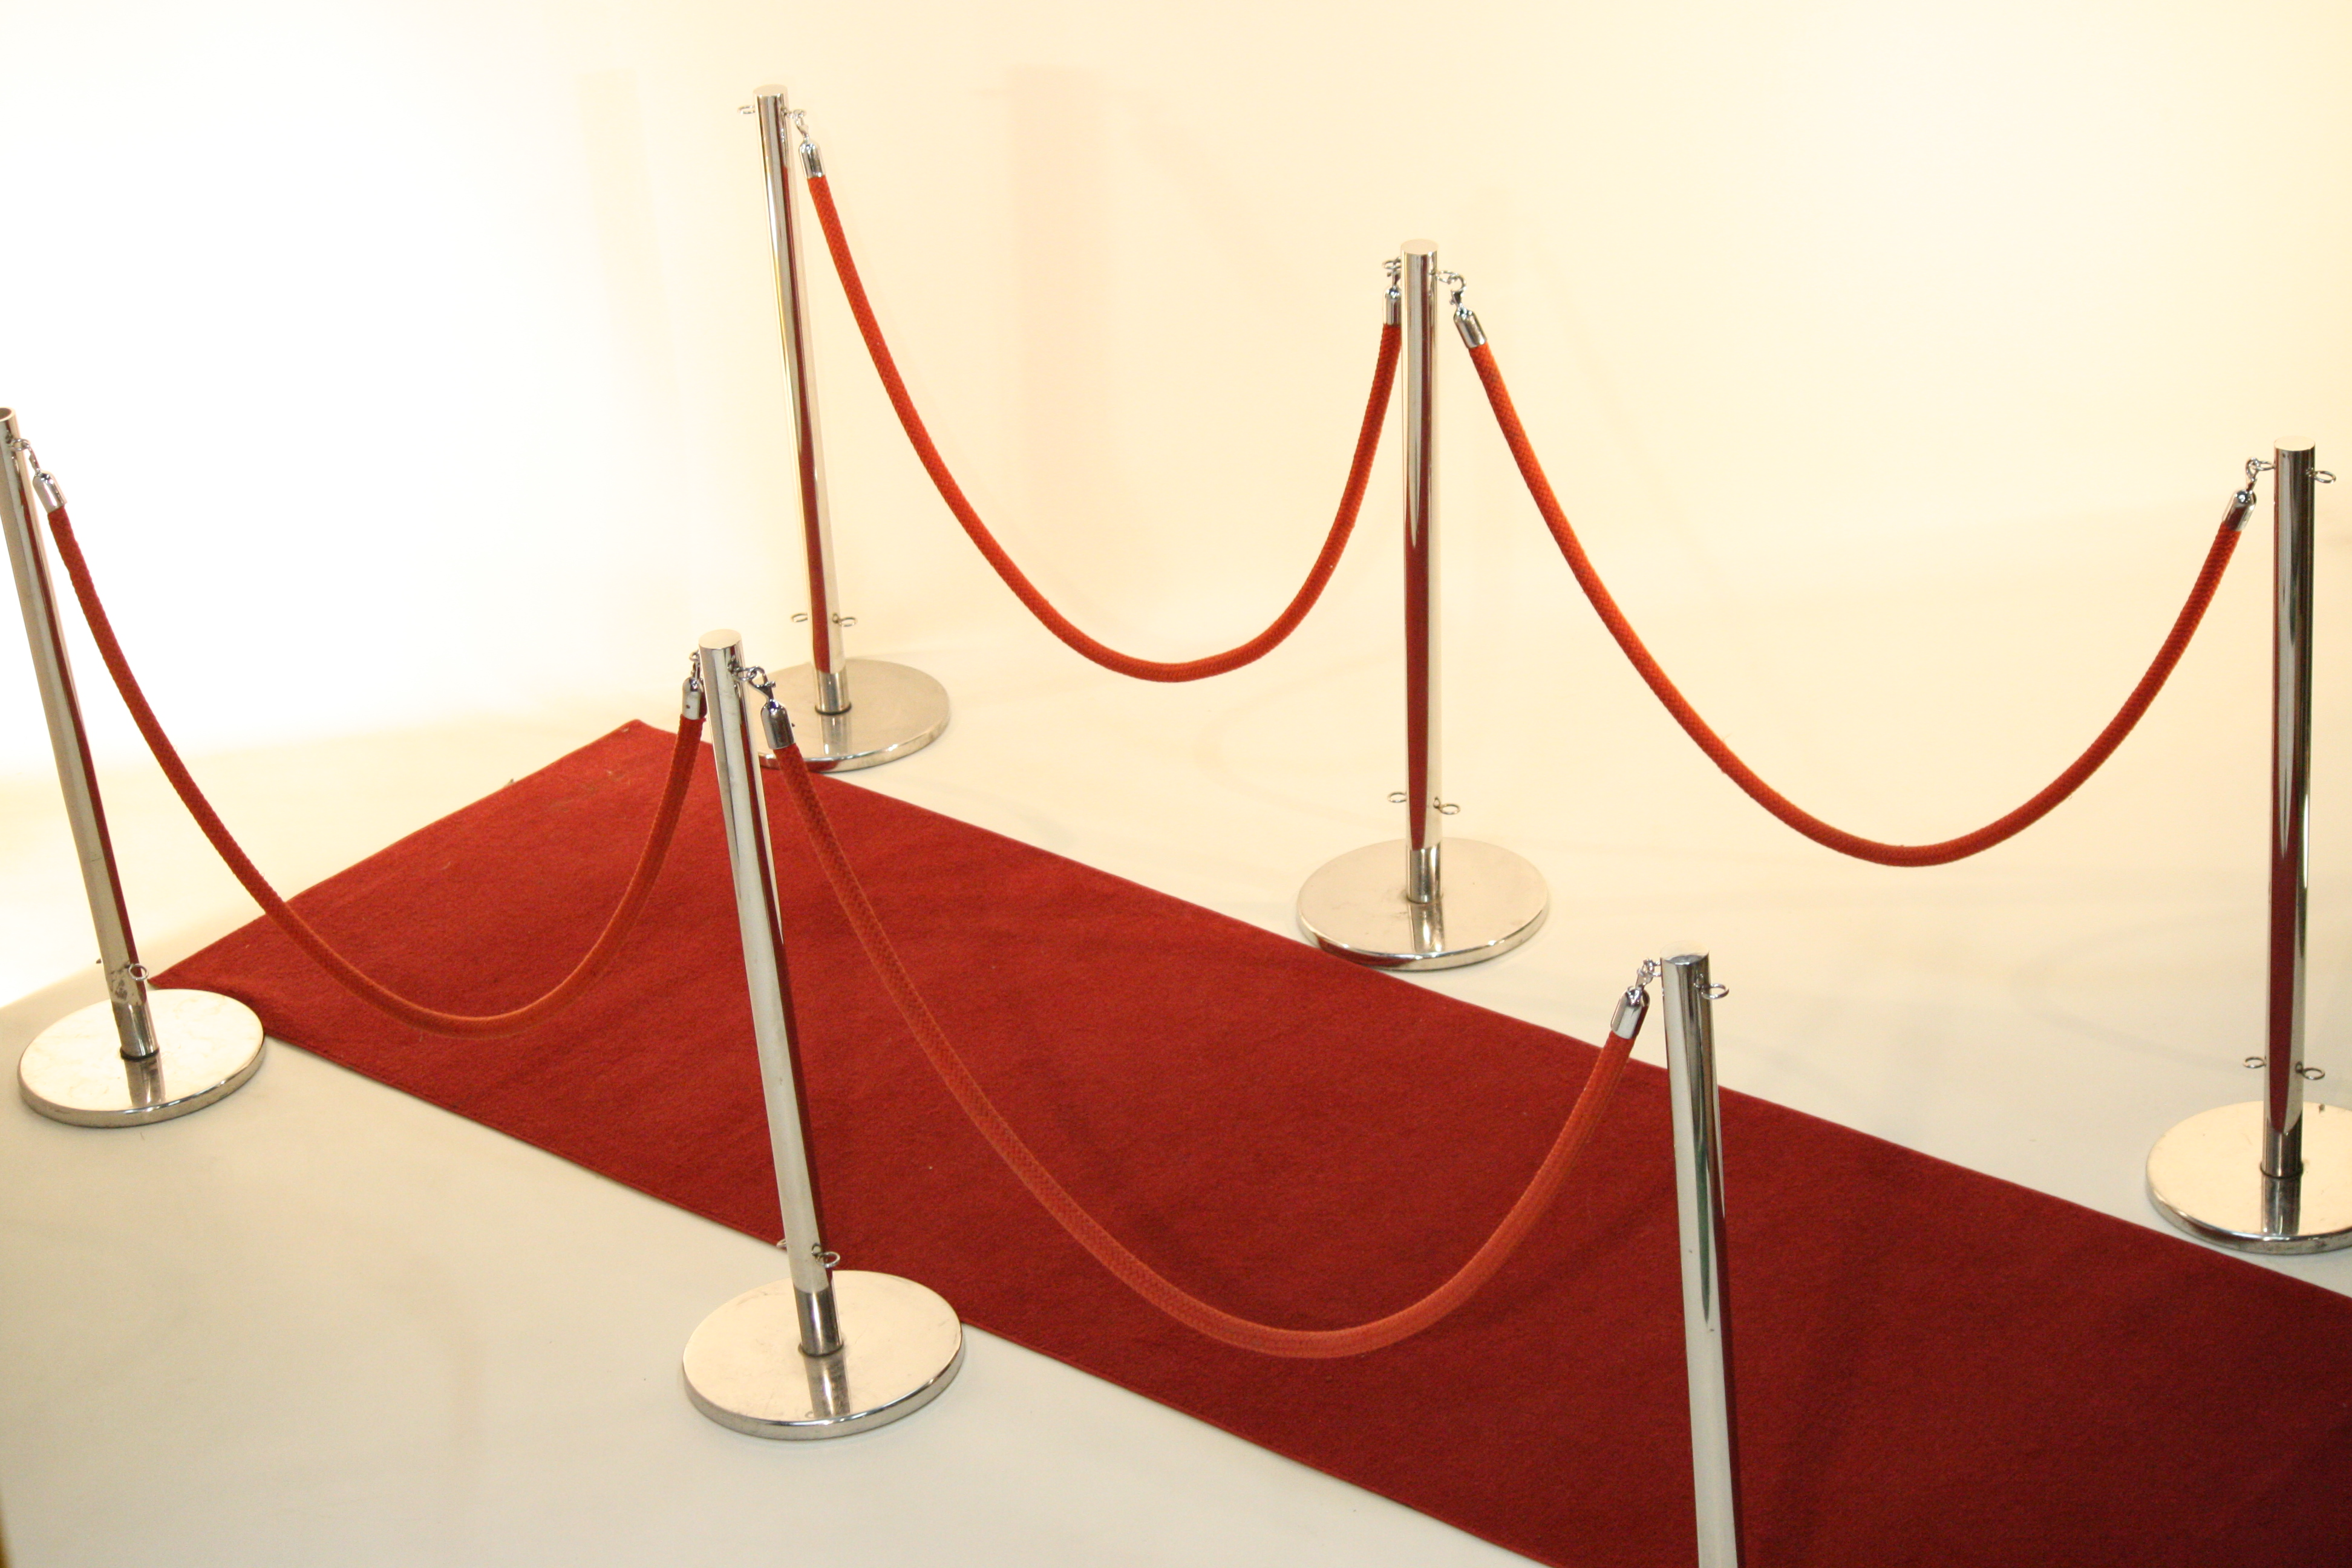 Red Carpet Runner Picture Of